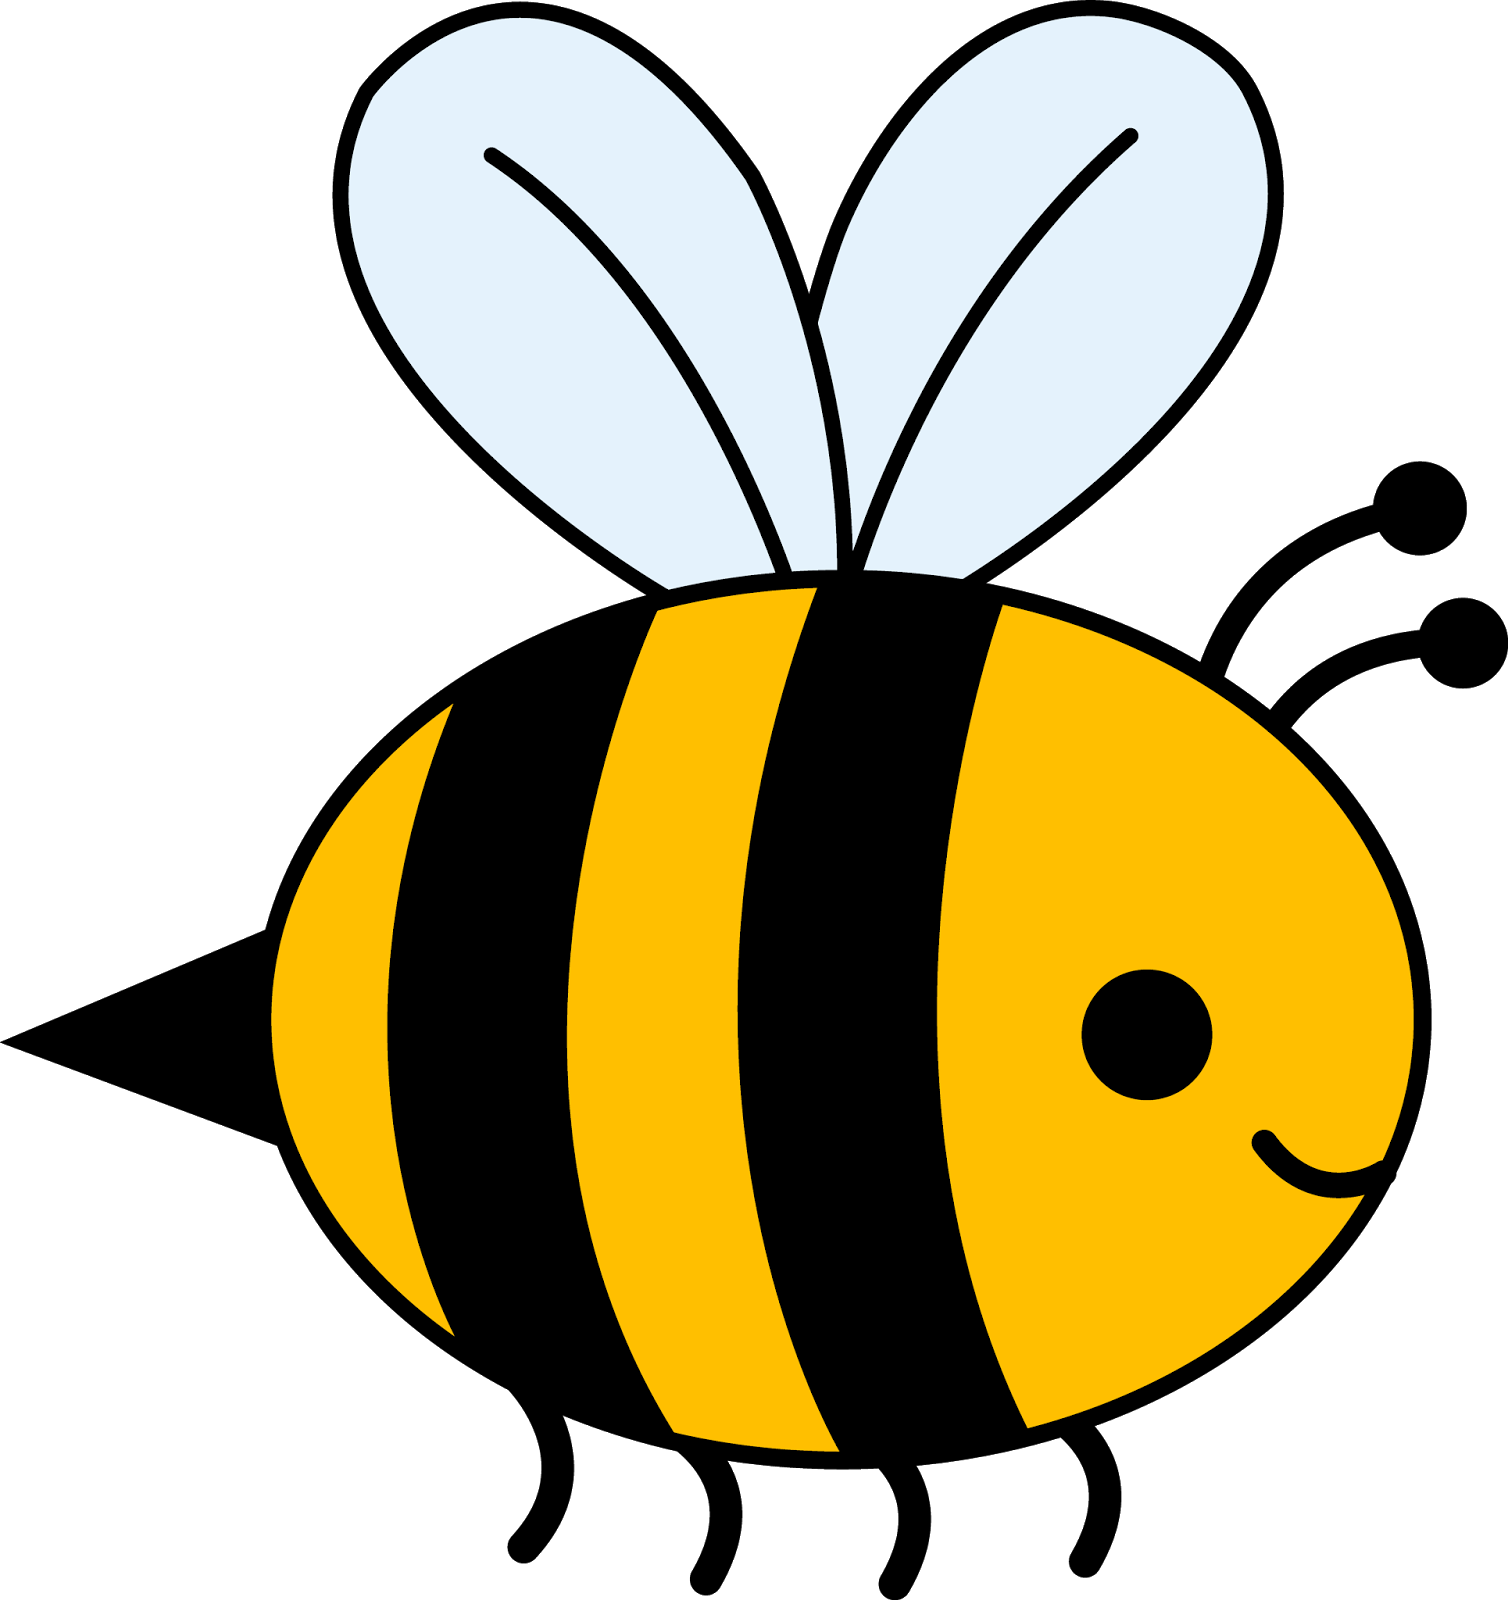 Bee Clipart Black And White | Clipart Panda - Free Clipart Images